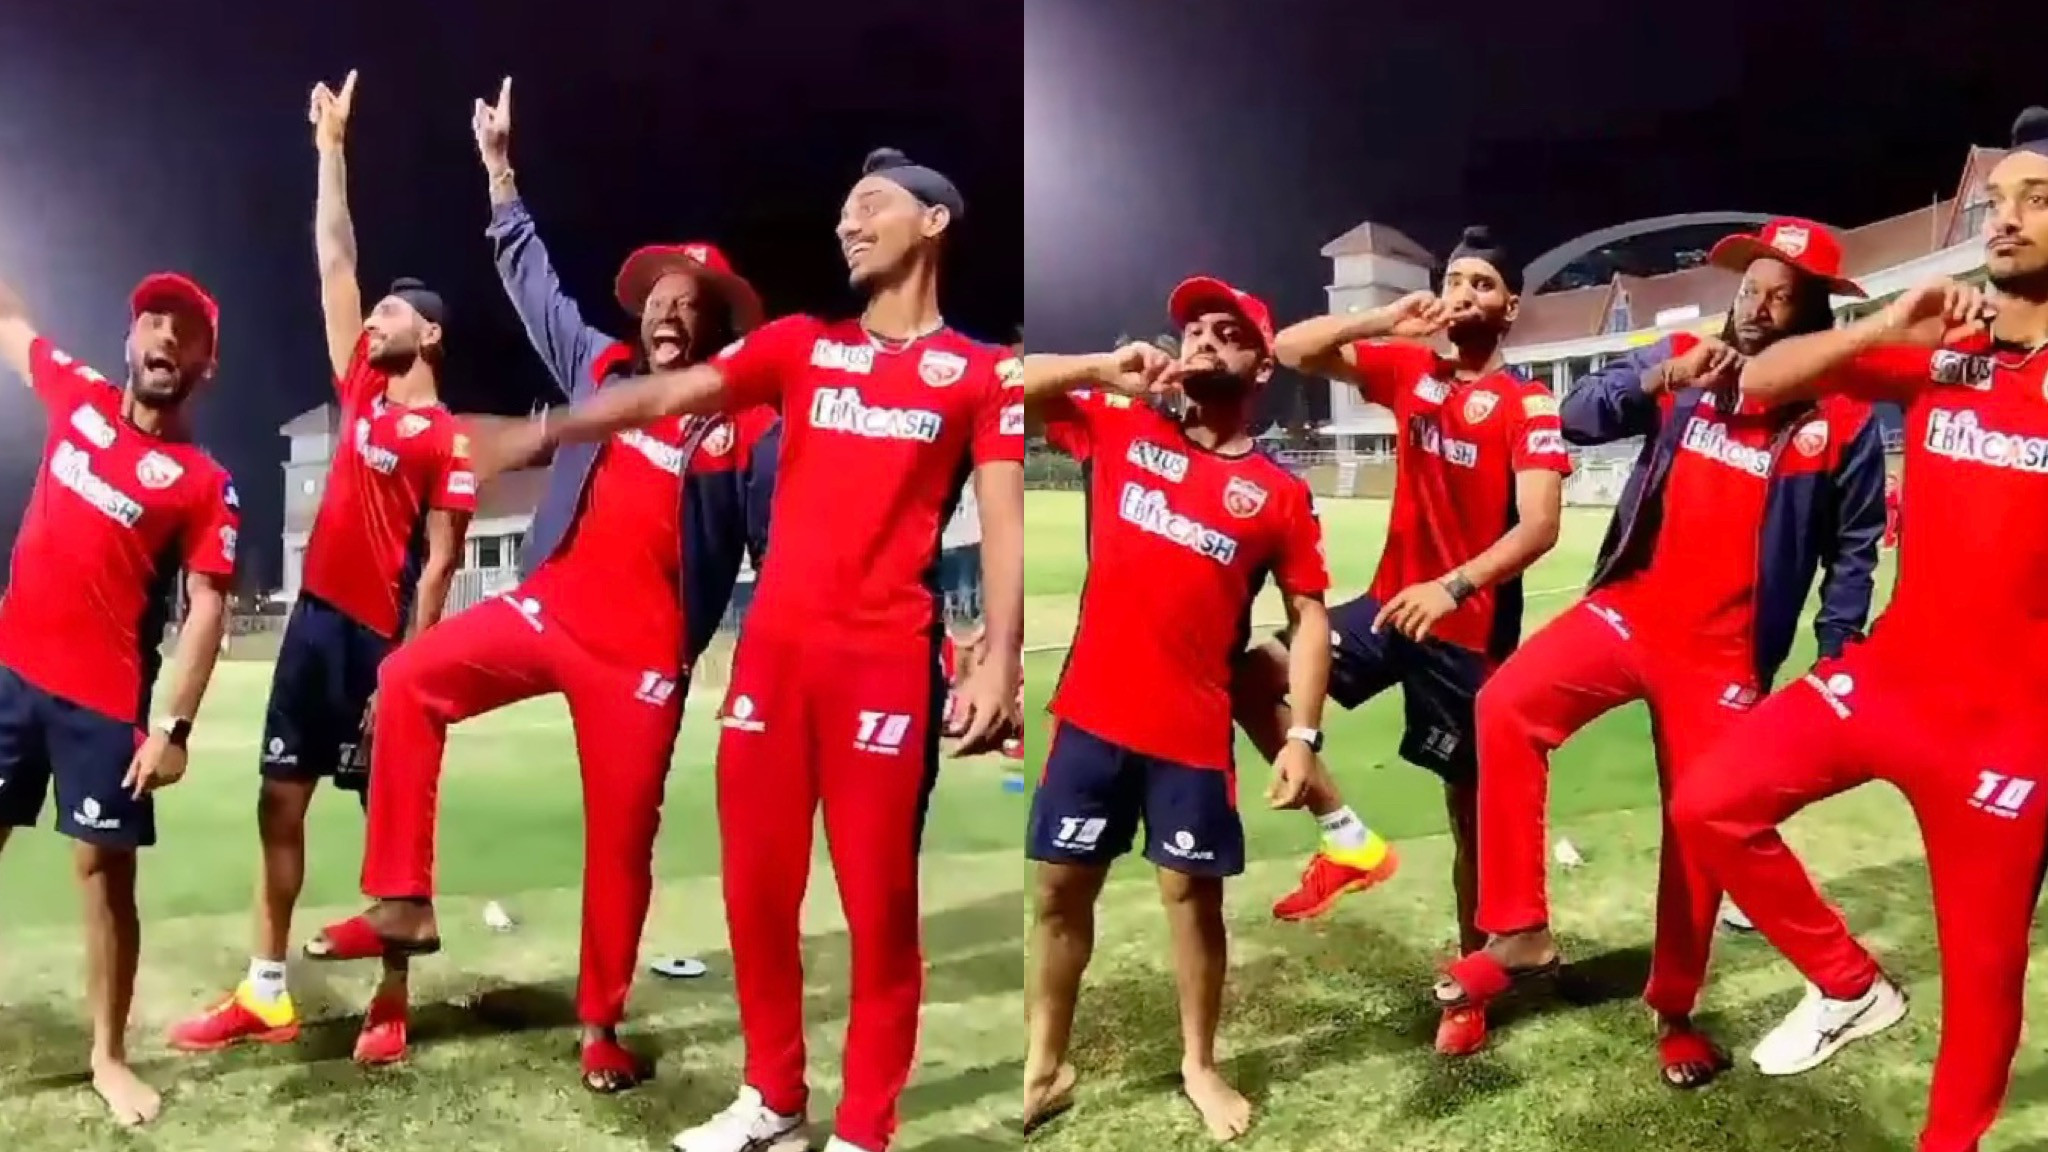 IPL 2021: WATCH- Chris Gayle does the thigh-five celebration with his PBKS teammates